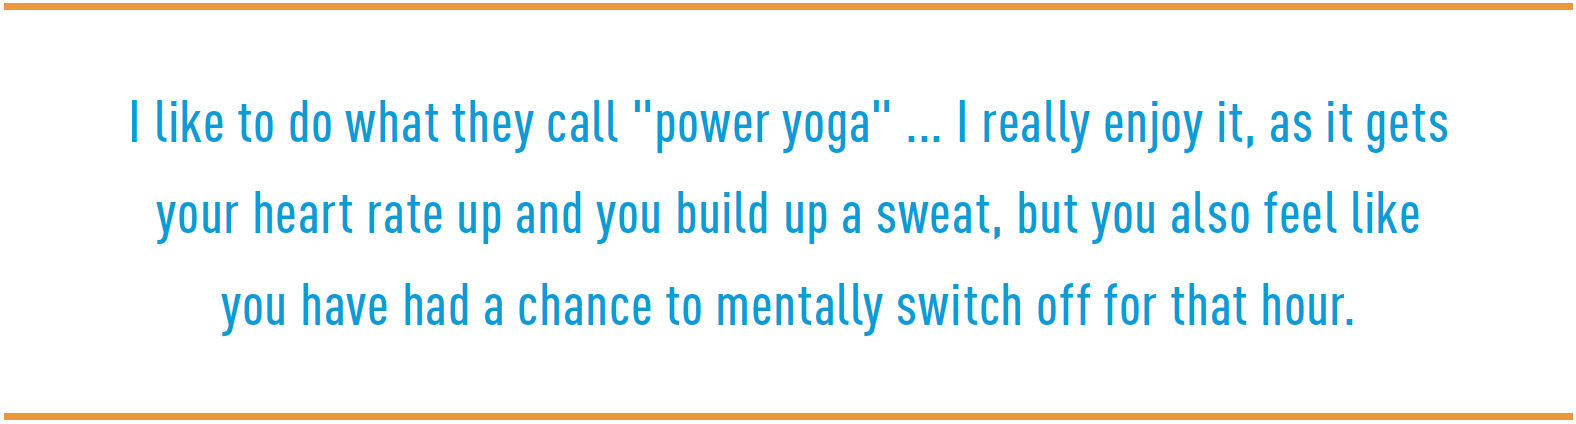 "I like to do what they call ""power yoga"" ... I really enjoy it, as it gets your heart rate up and you build up a sweat, but you also feel like you have had a chance to mentally switch off for that hour."